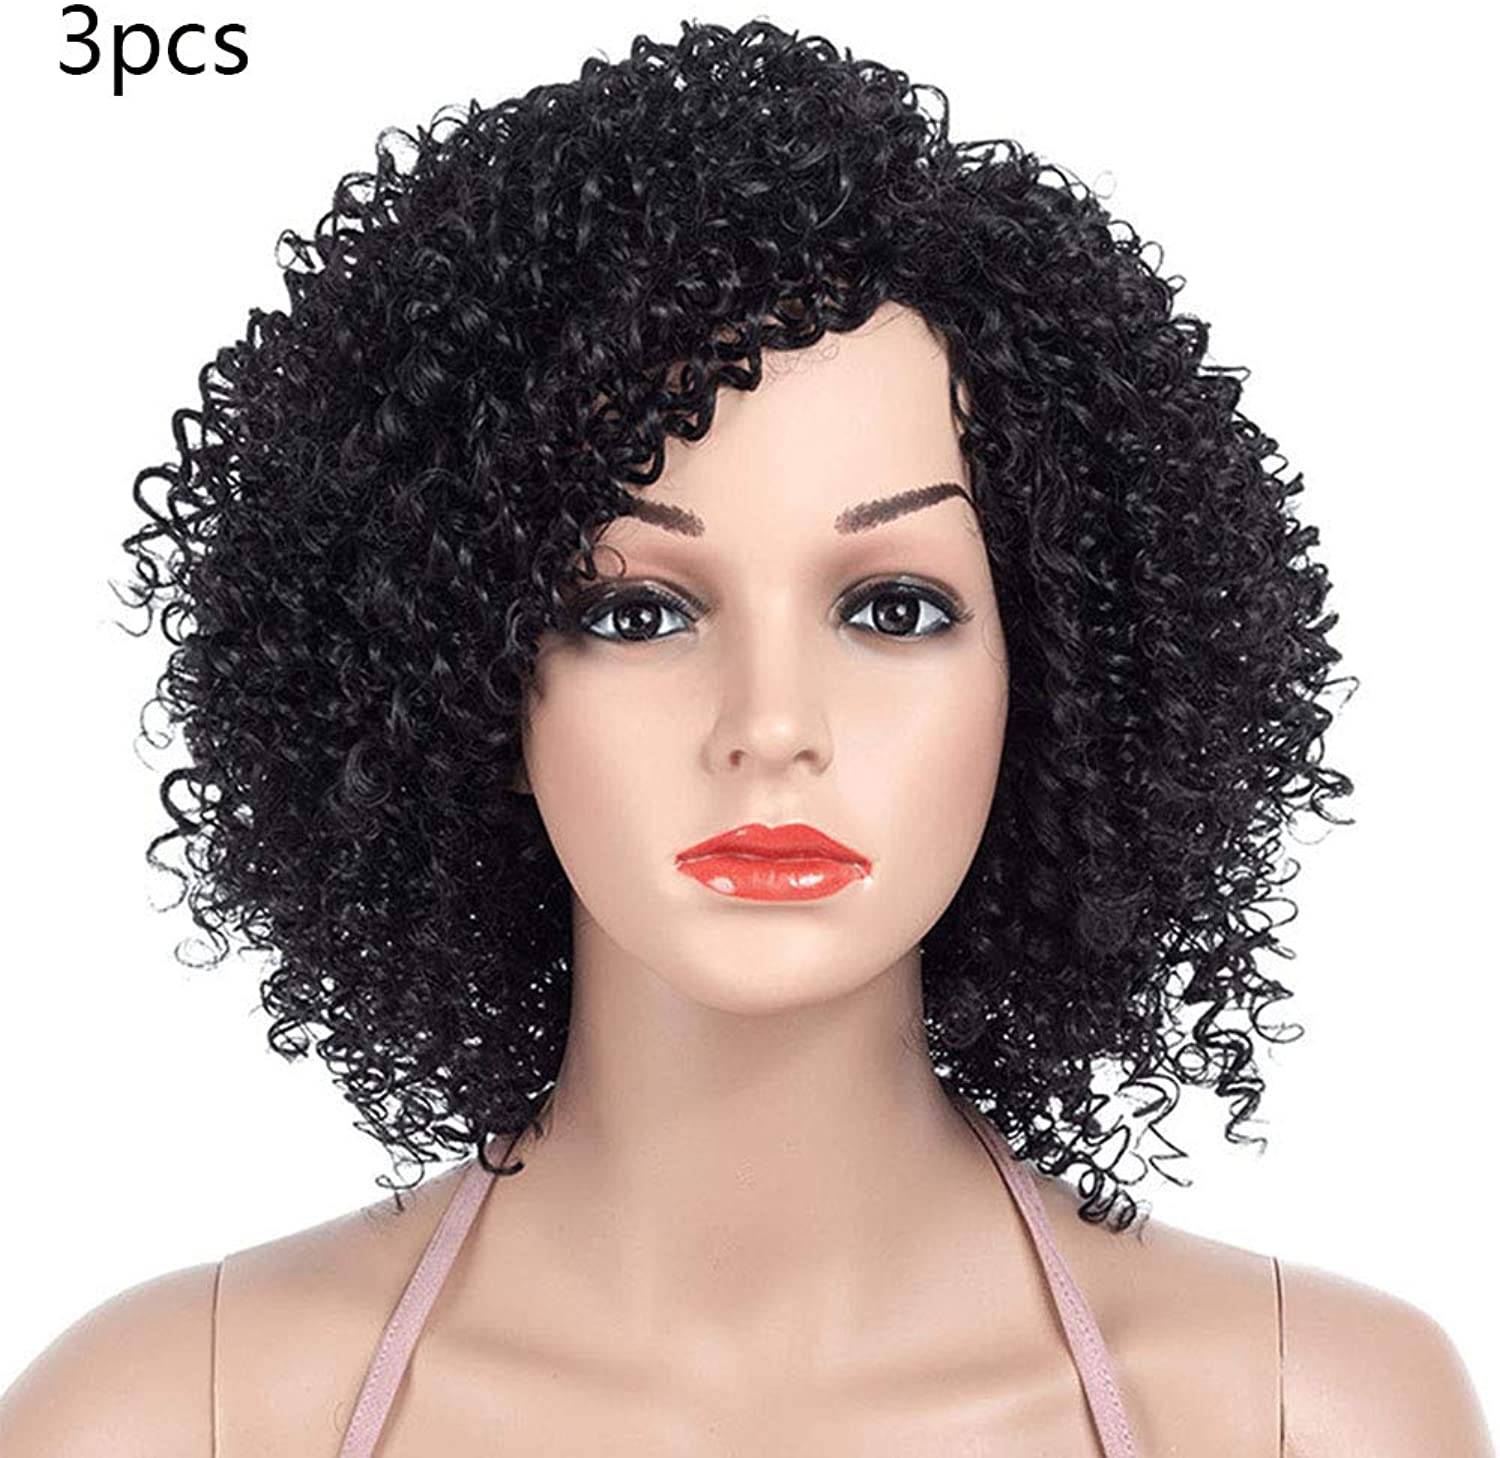 Hairpieces Small Roll Of Long Wig Heat Resistant Fiber Hairpiece Adhesives Synthetic Lace Party Wigs Costumes Accessories(Small Roll Black 3PCS)